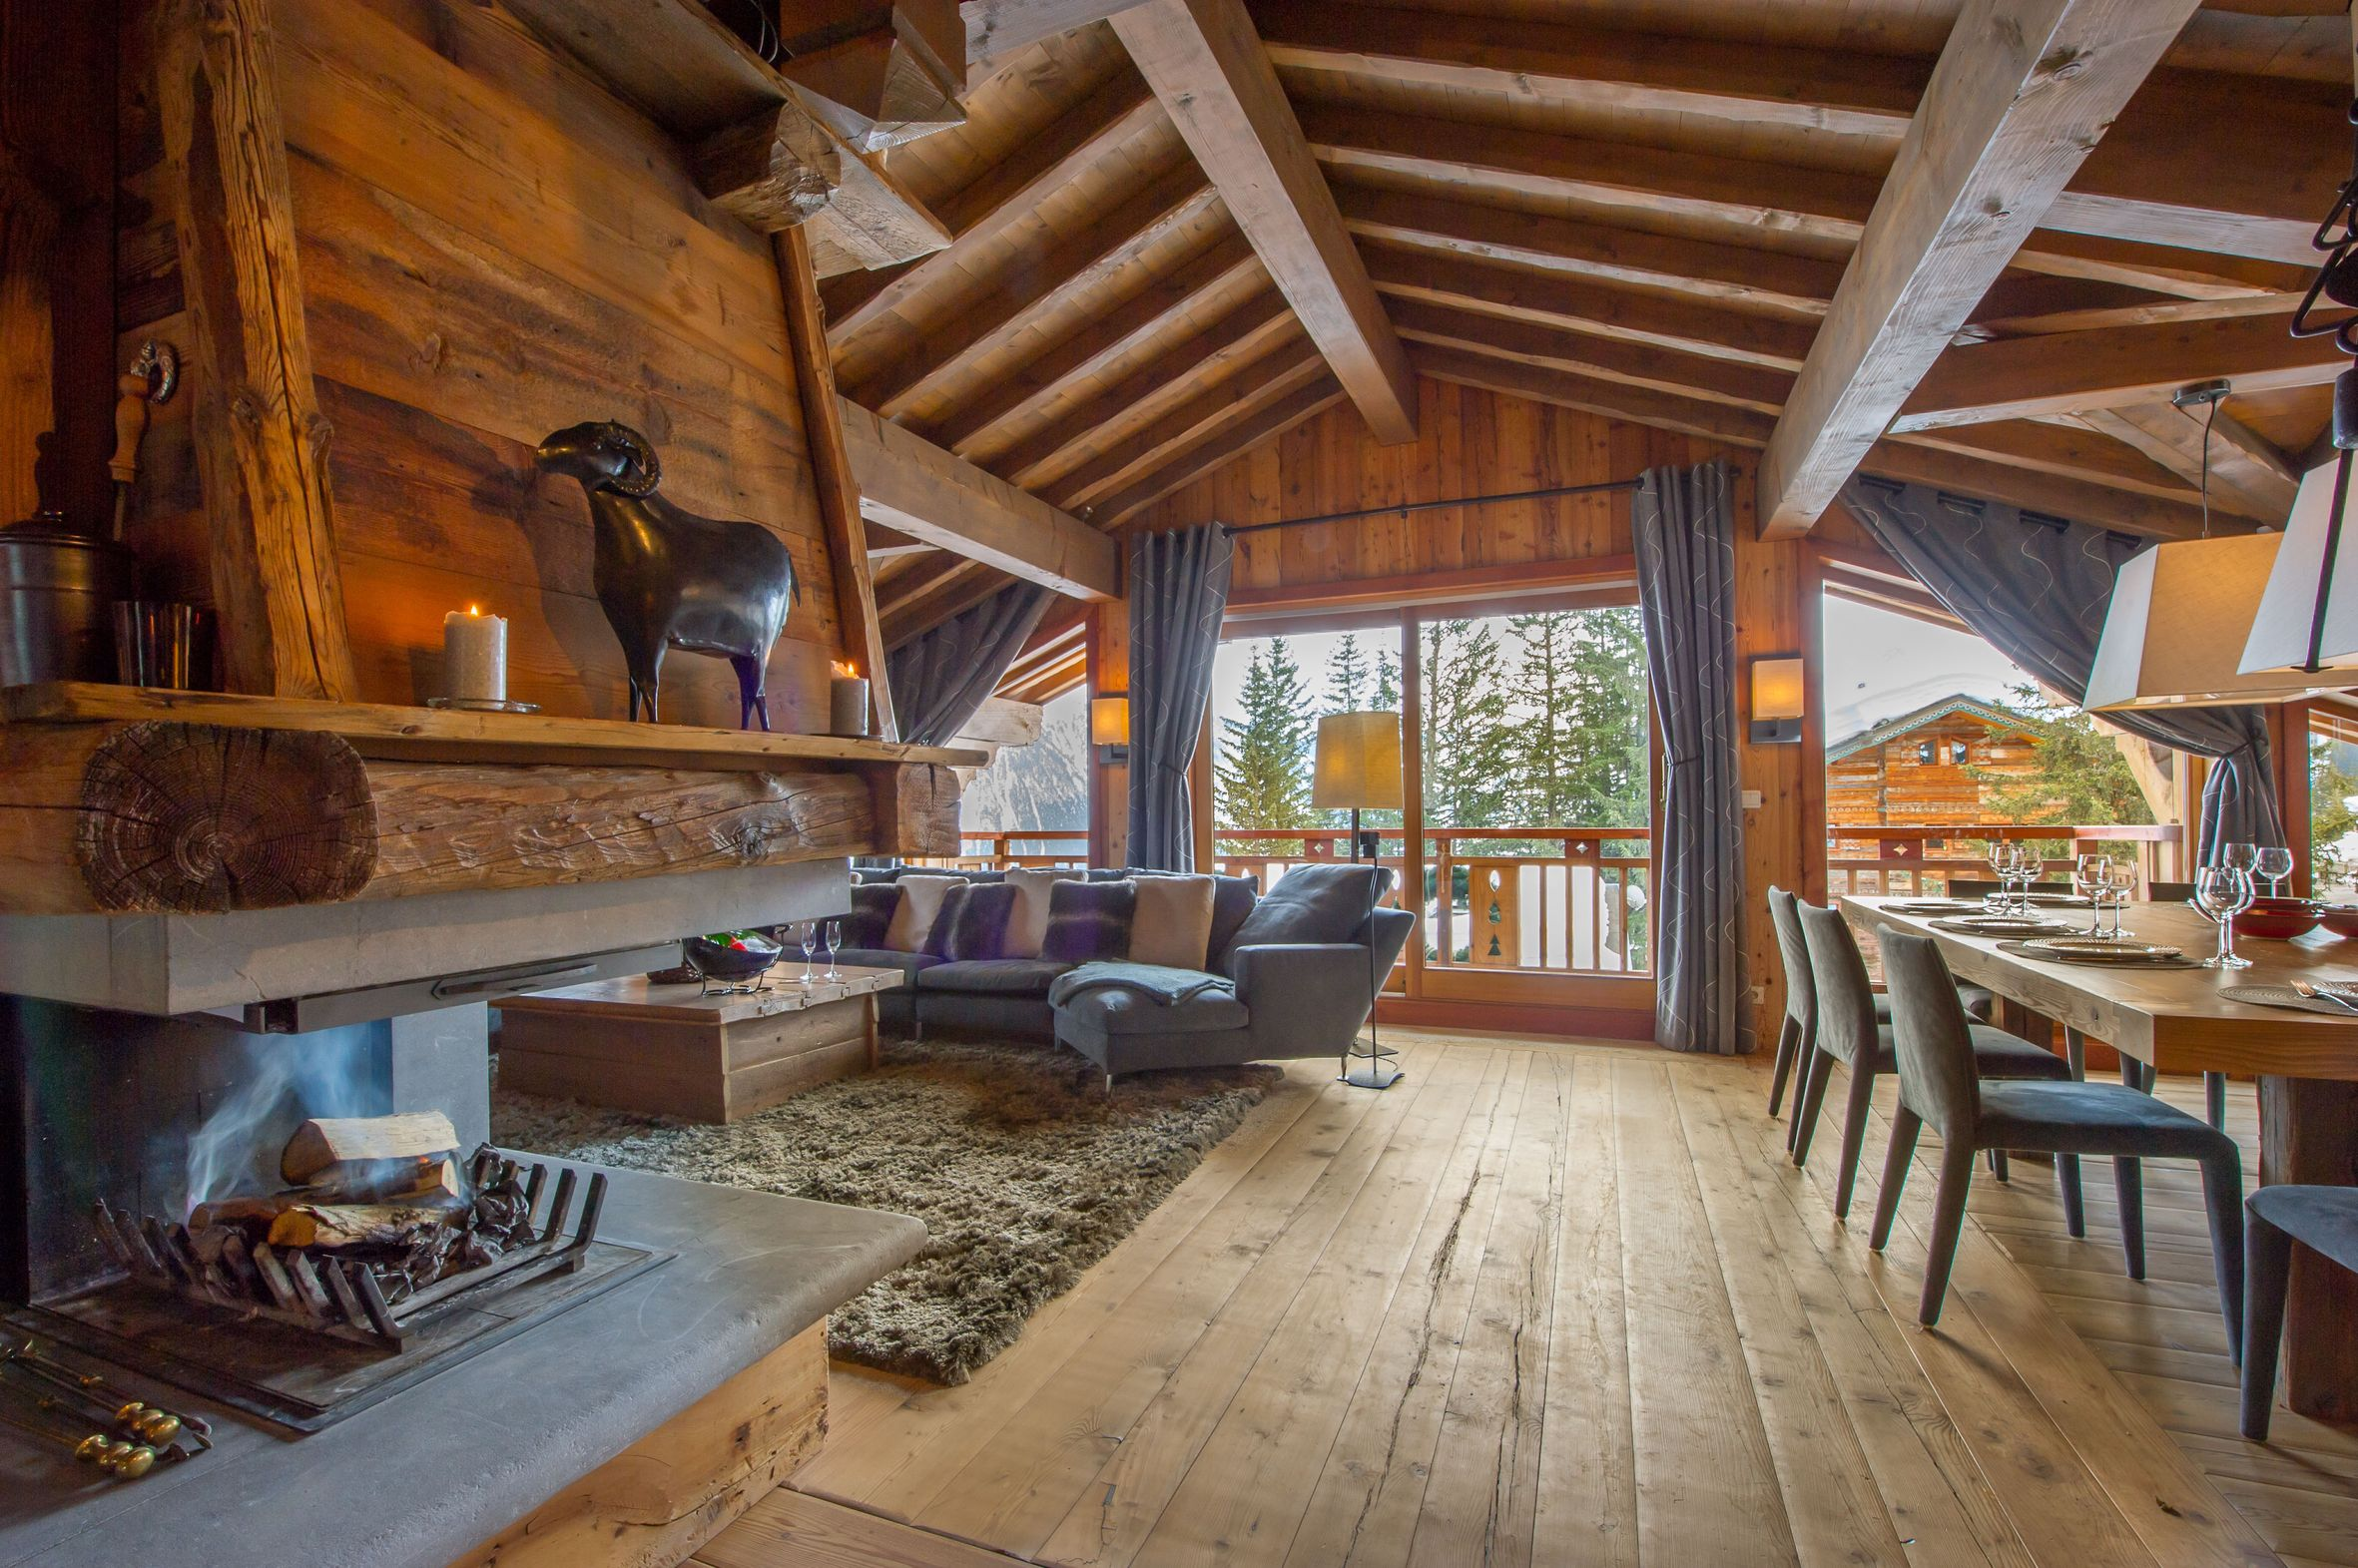 Rental chalet courchevel 1850 12 people monic1204 for Chalet a la montagne avec piscine